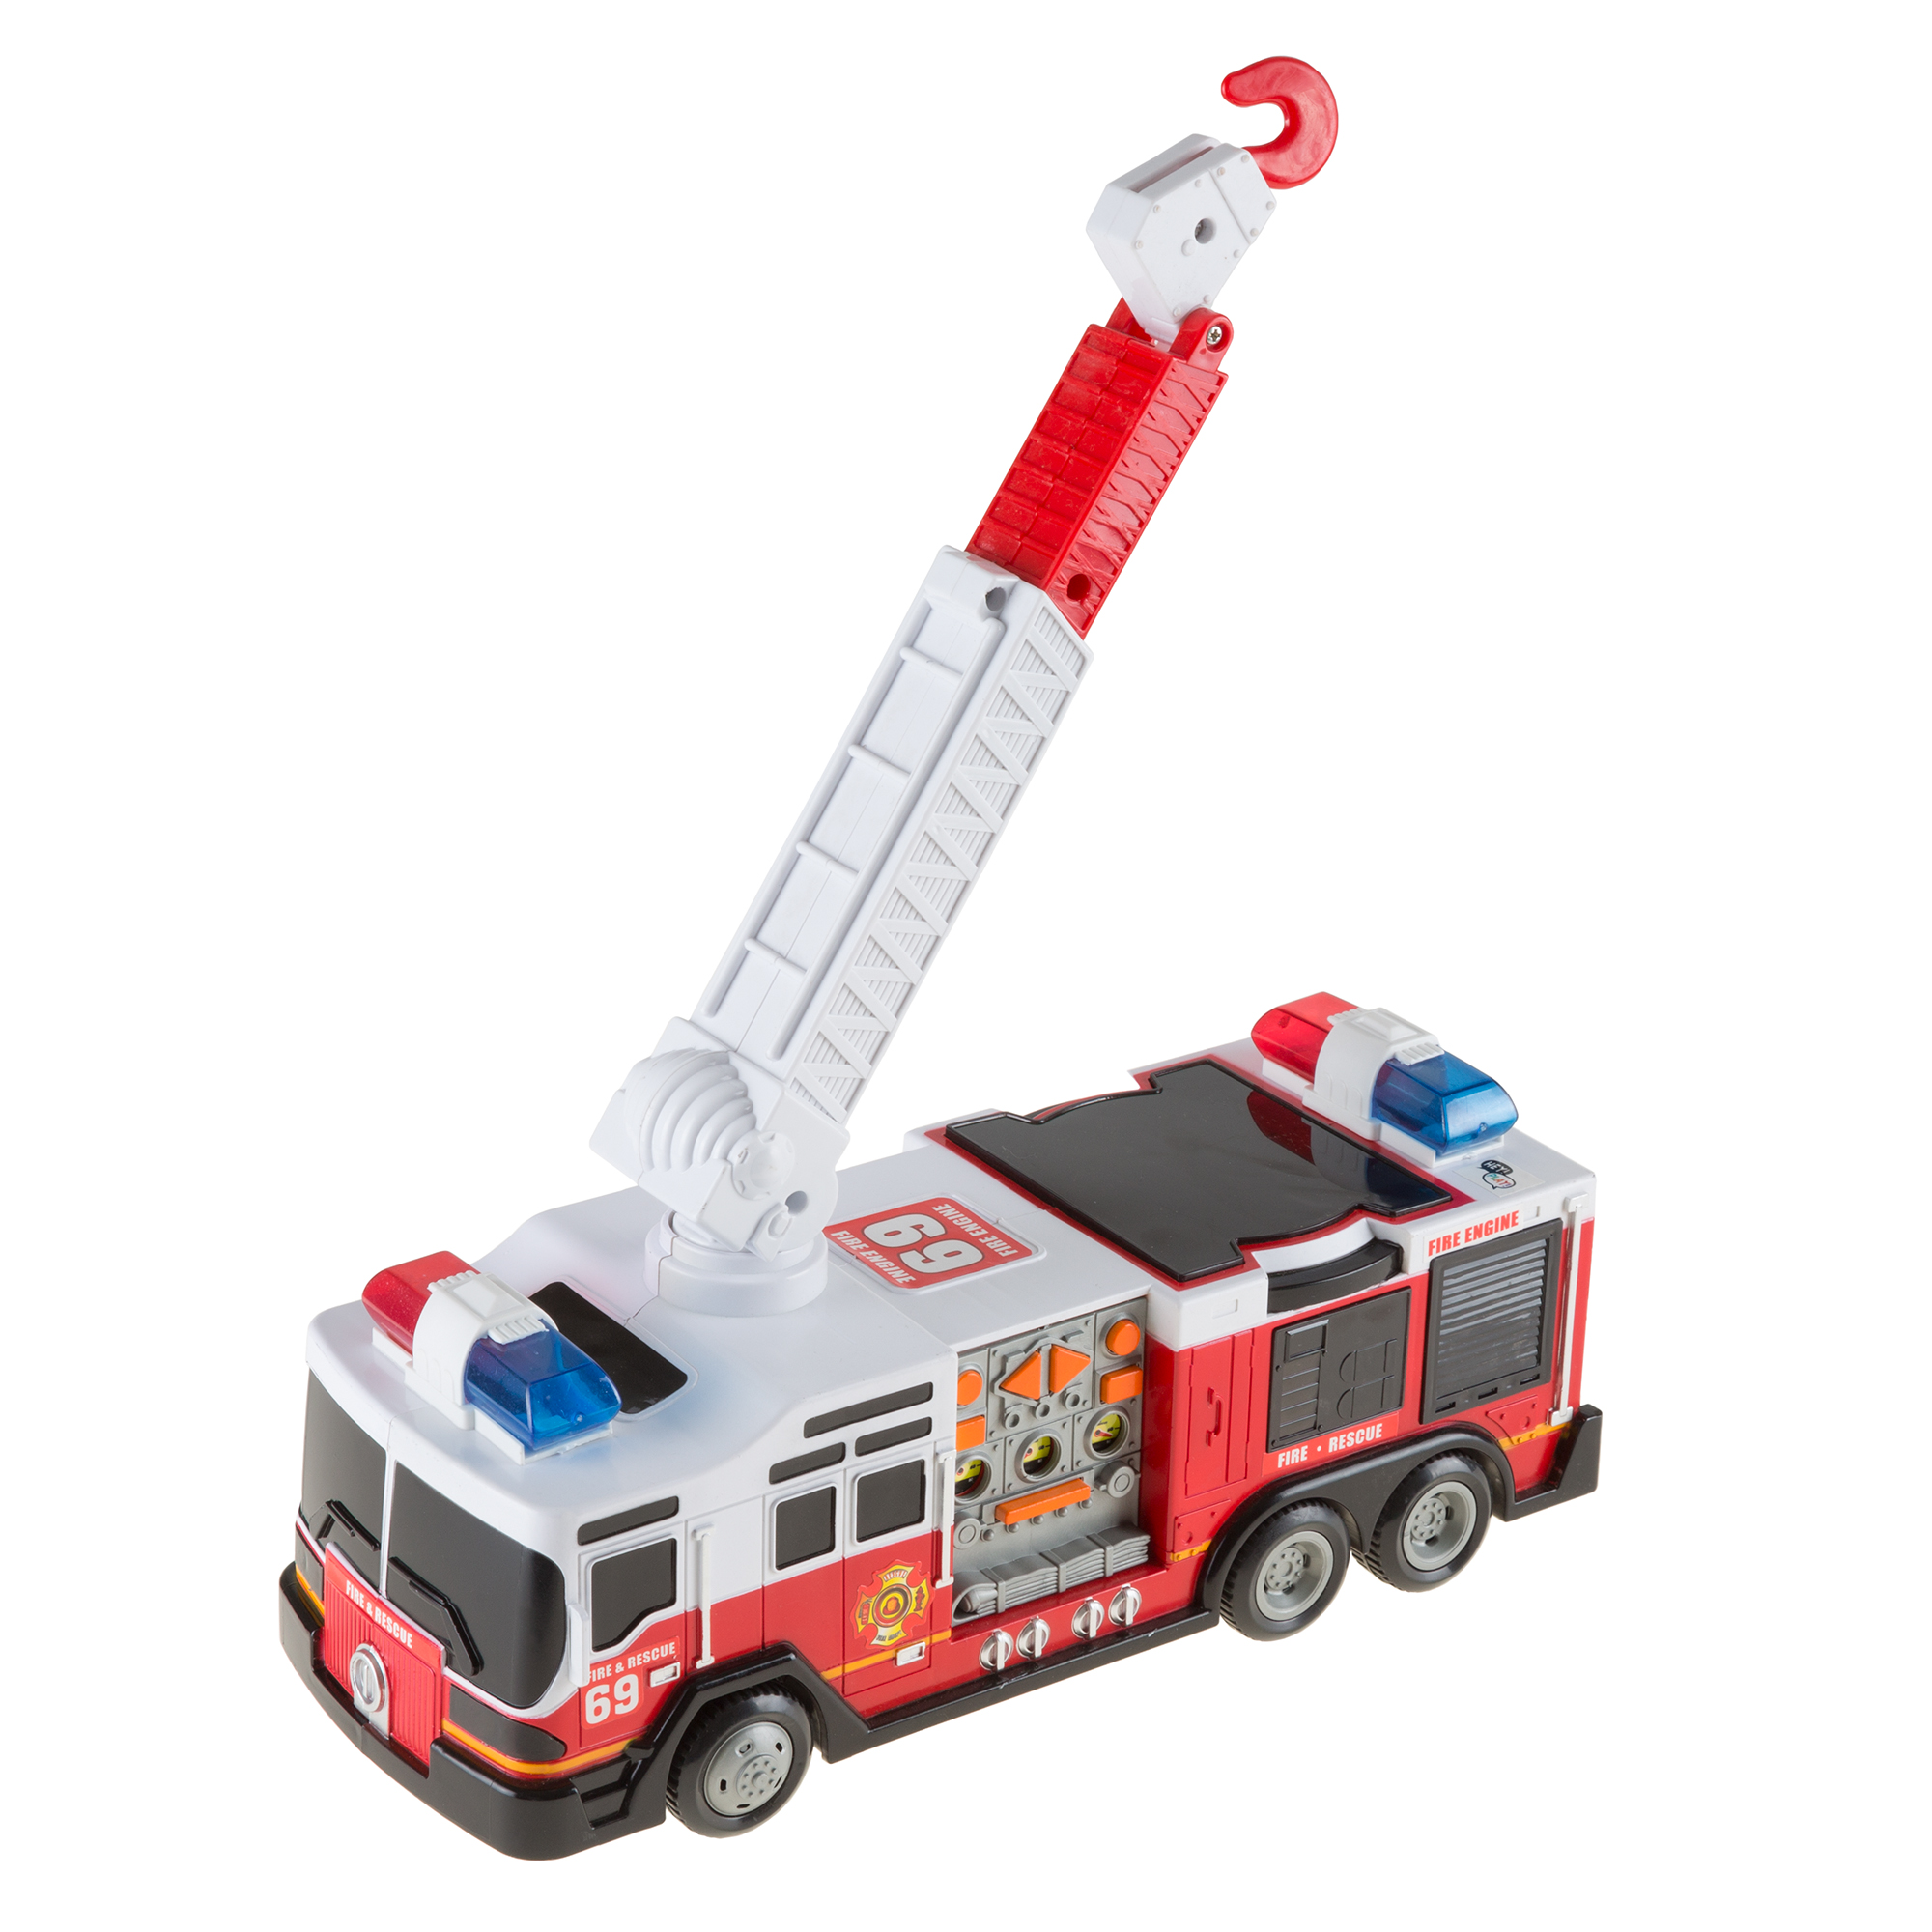 Toy Fire Truck with Extending Ladder, Battery-Powered Lights, Siren Sounds and Bump-n-Go Movement for Toddlers Boys and Girls by Hey! Play!